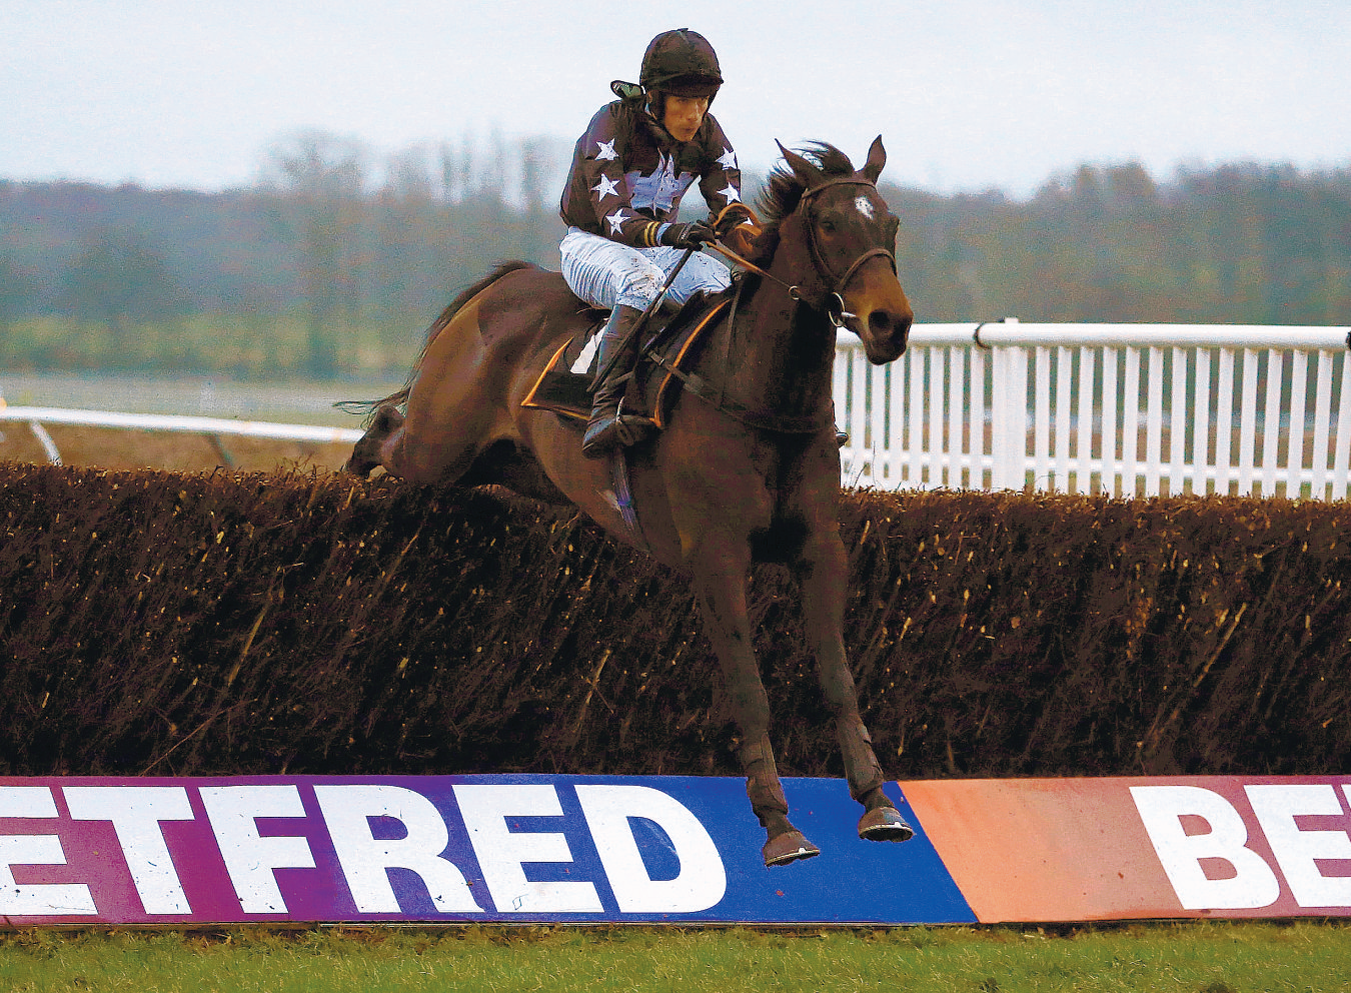 STRETCHING AHEAD: Foundry Square riden by Will Telfer wins the Open Hunters Steeple Chase at Newbury on Wednesday